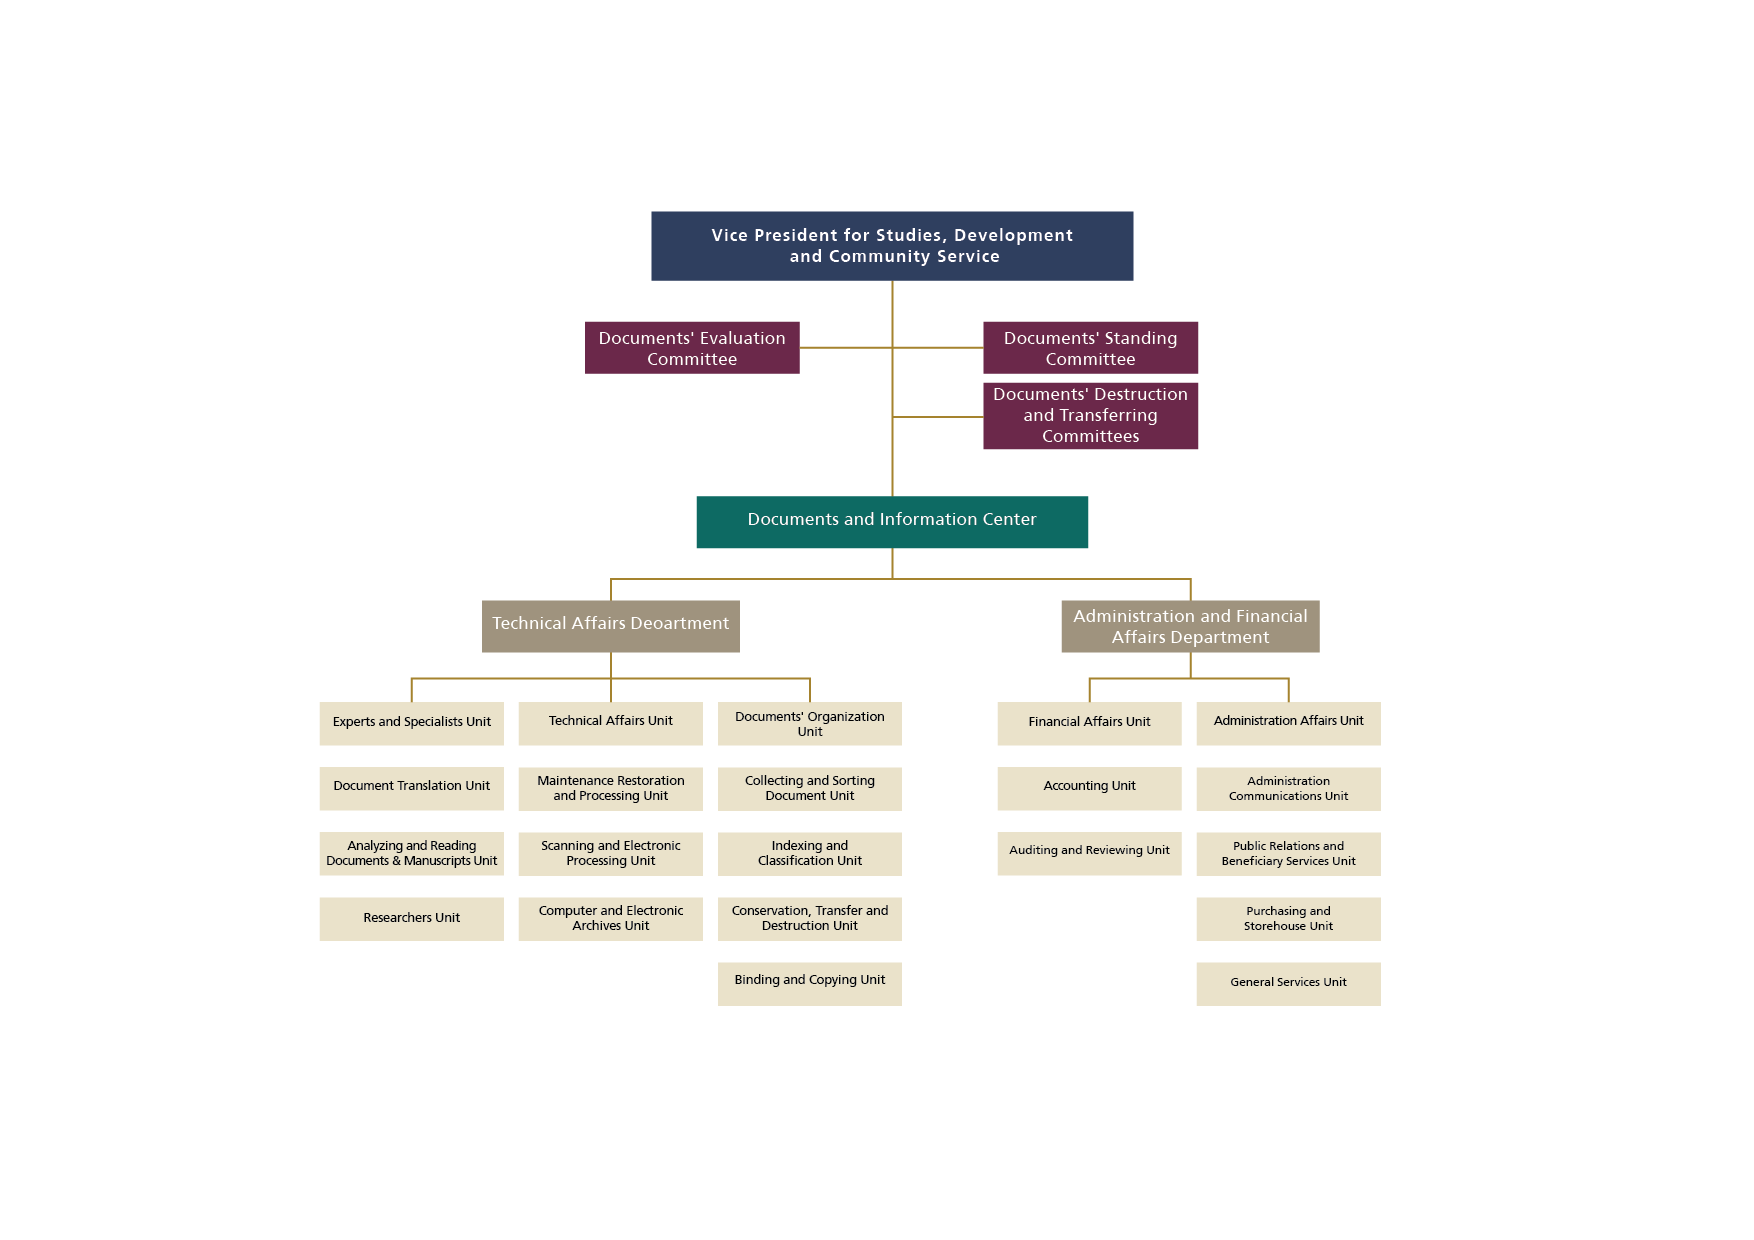 Documents and Information Center's Organizational Structure ENG